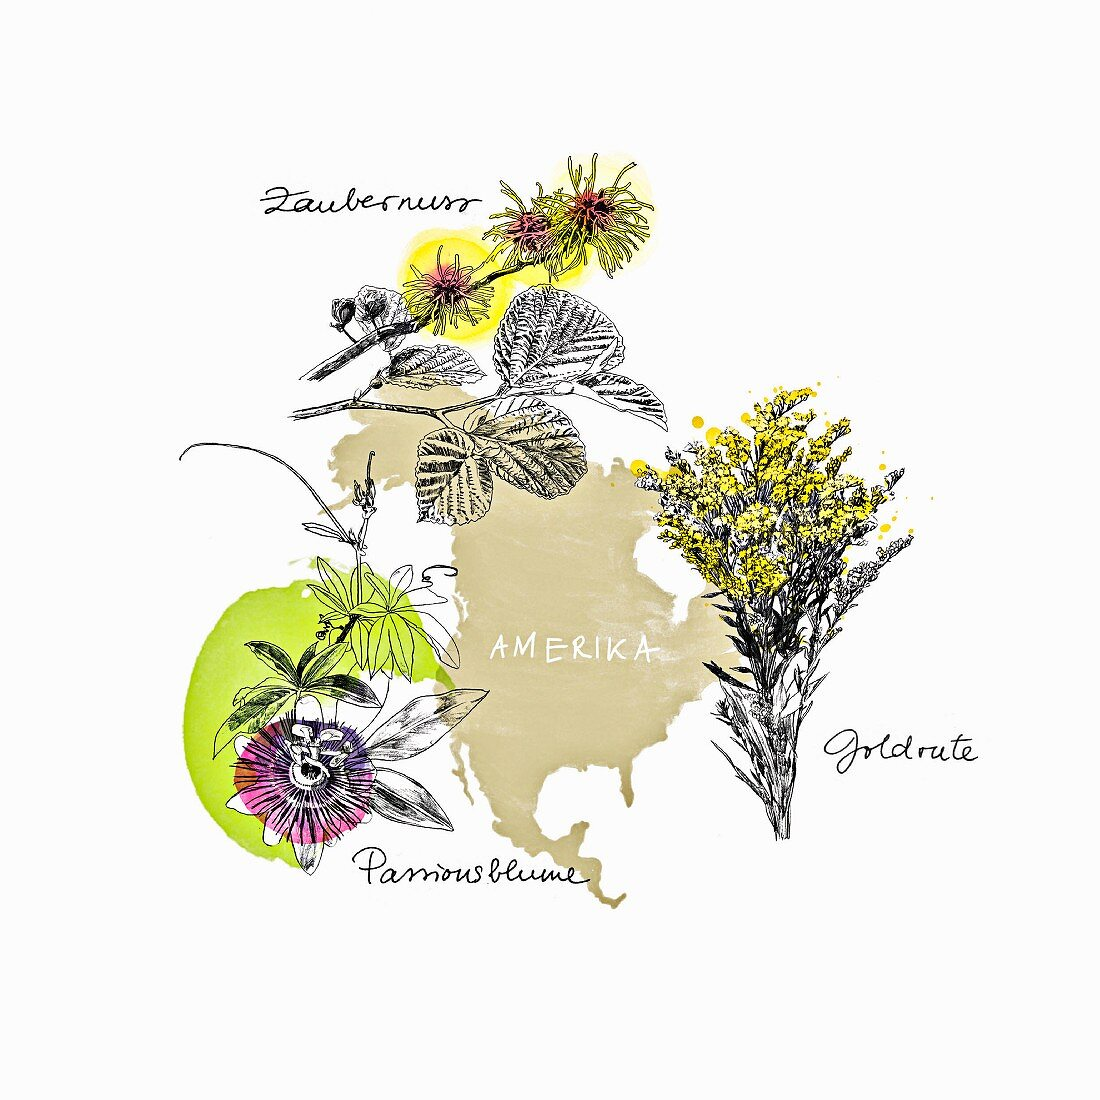 Medicinal herbs from America